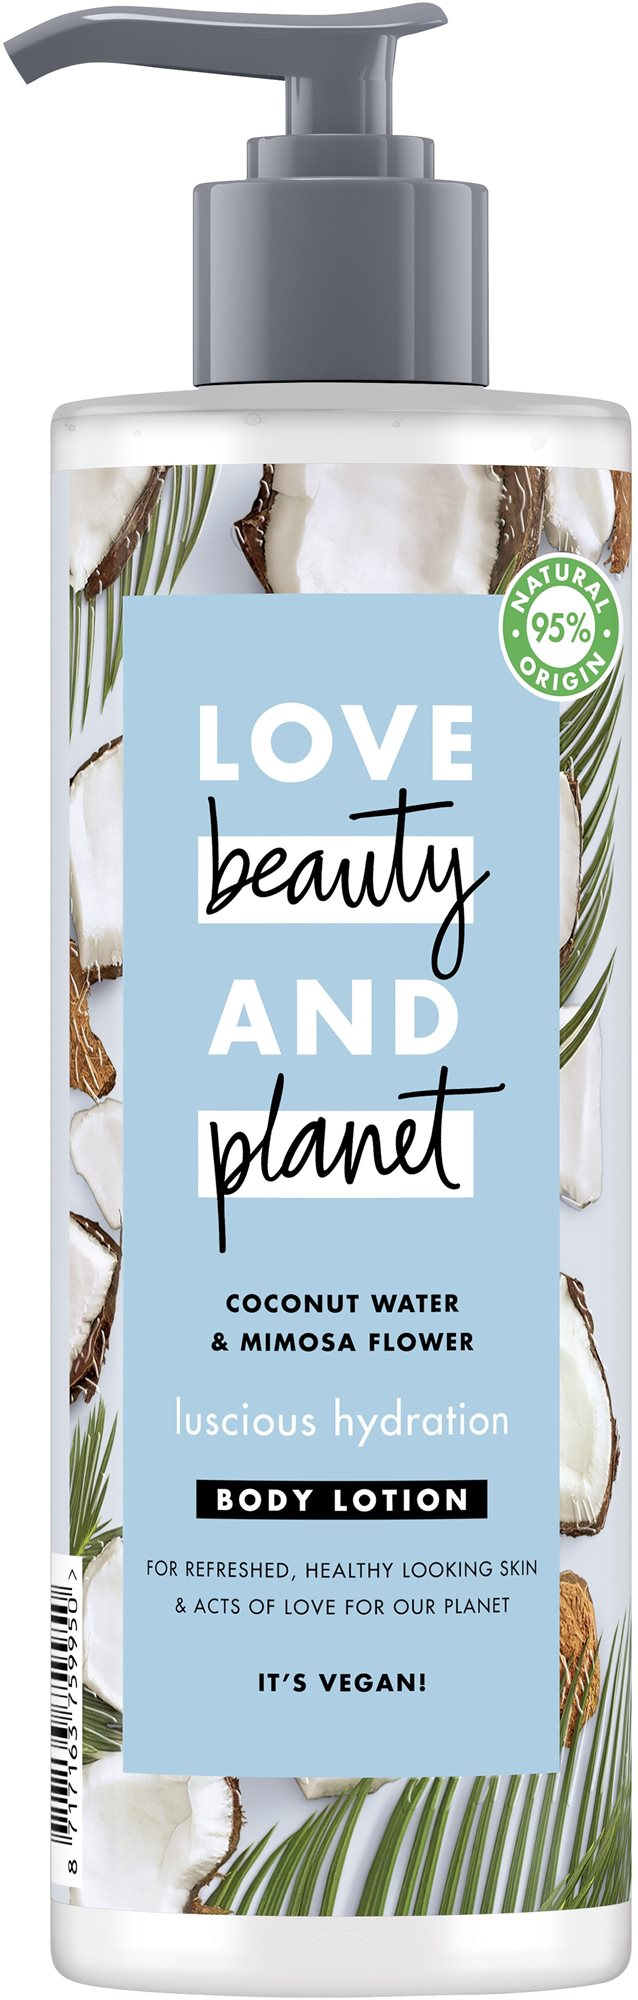 LOVE BEAUTY AND PLANET Luscious Hydratation Body Lotion 400 ml